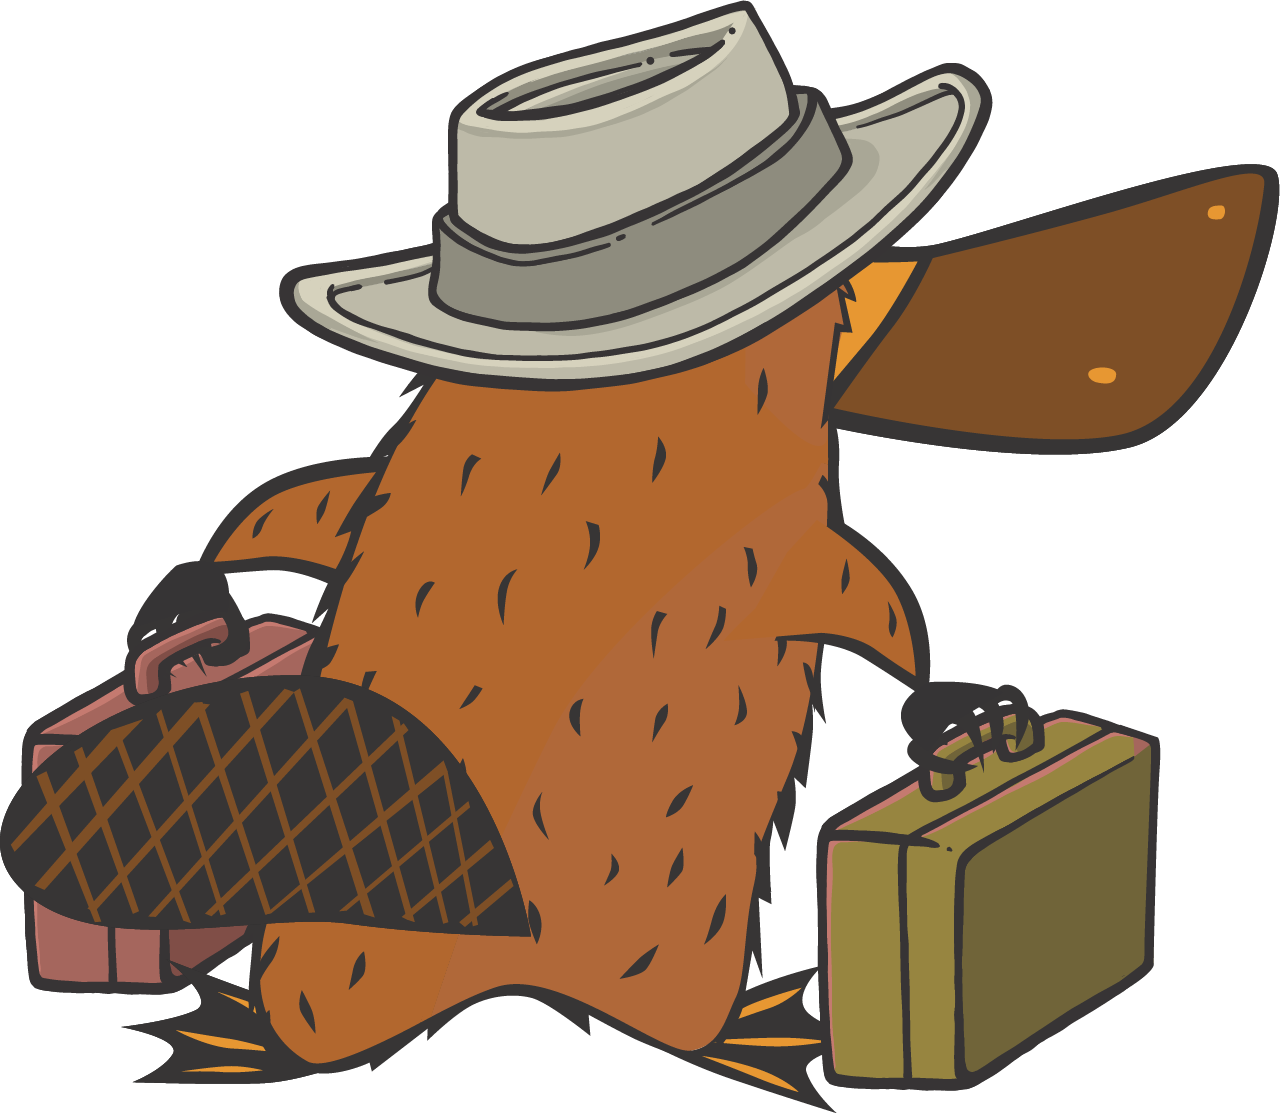 City beer store for. Cowboy clipart ten gallon hat